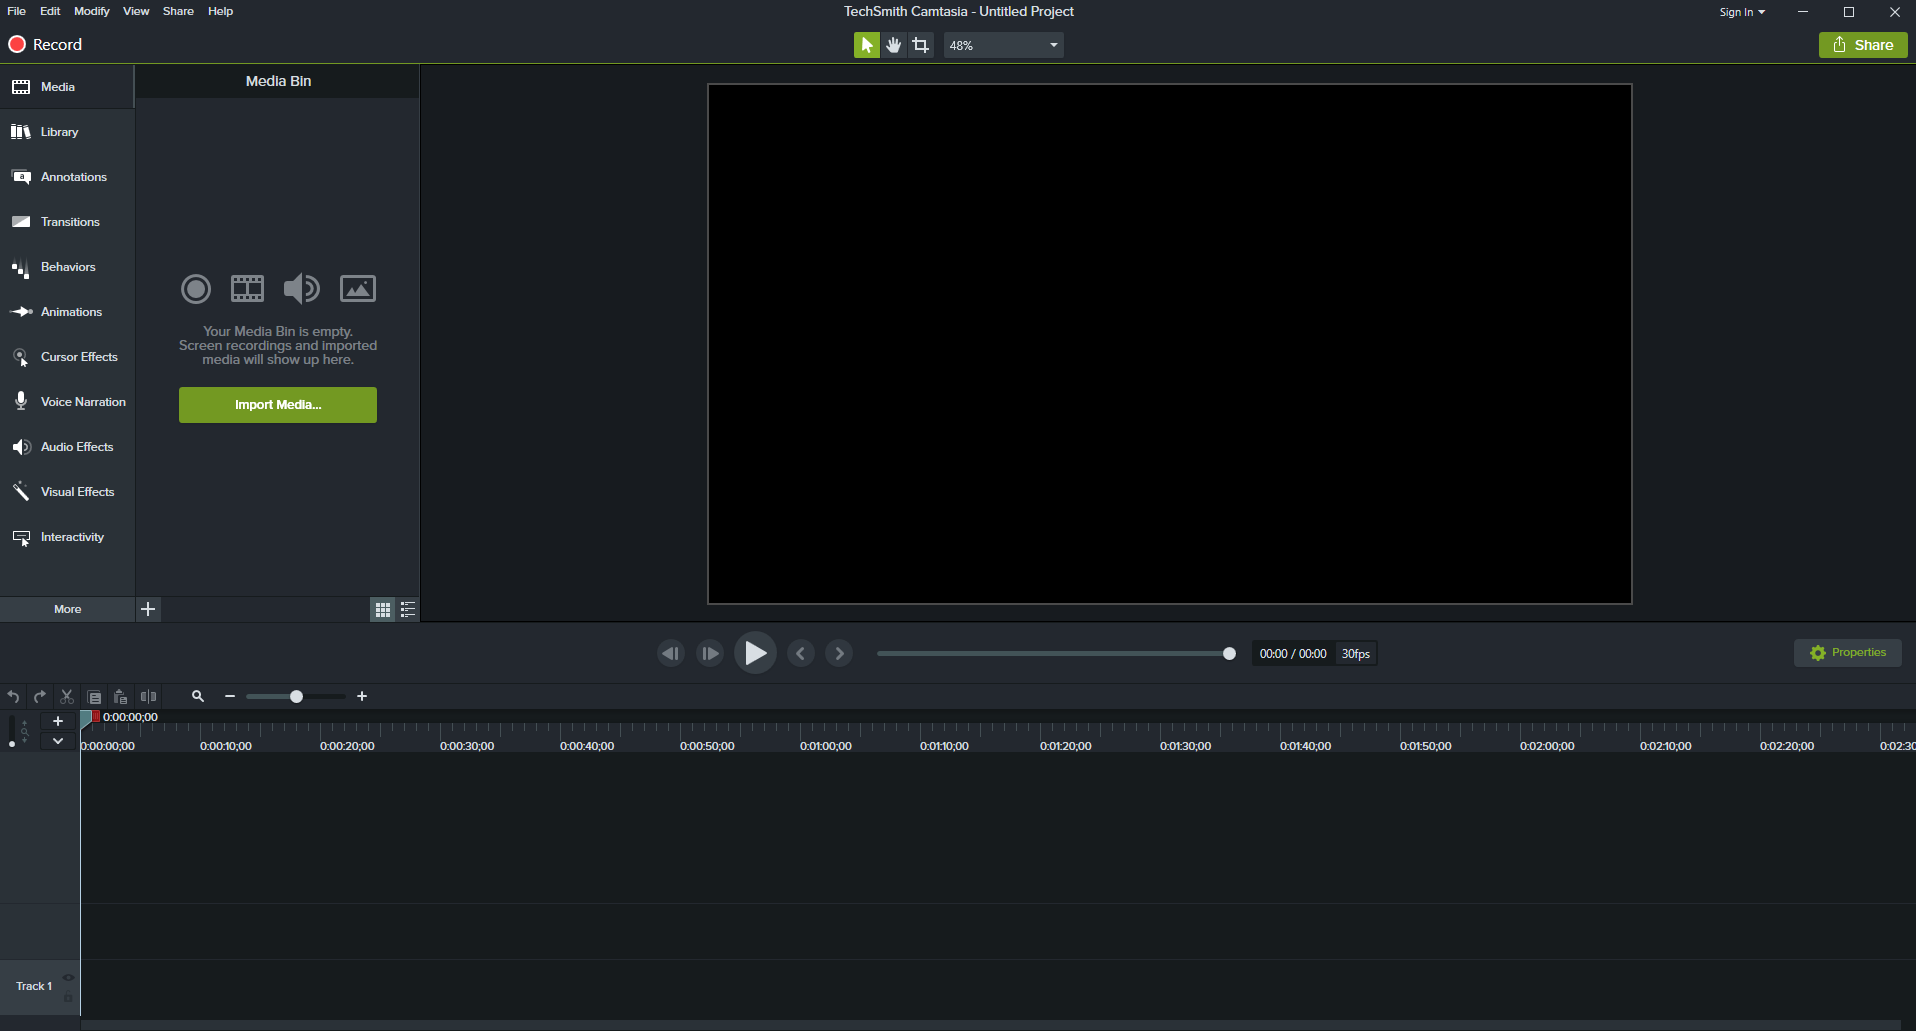 Screenshot der Screencast Software TechSmith Camtasia